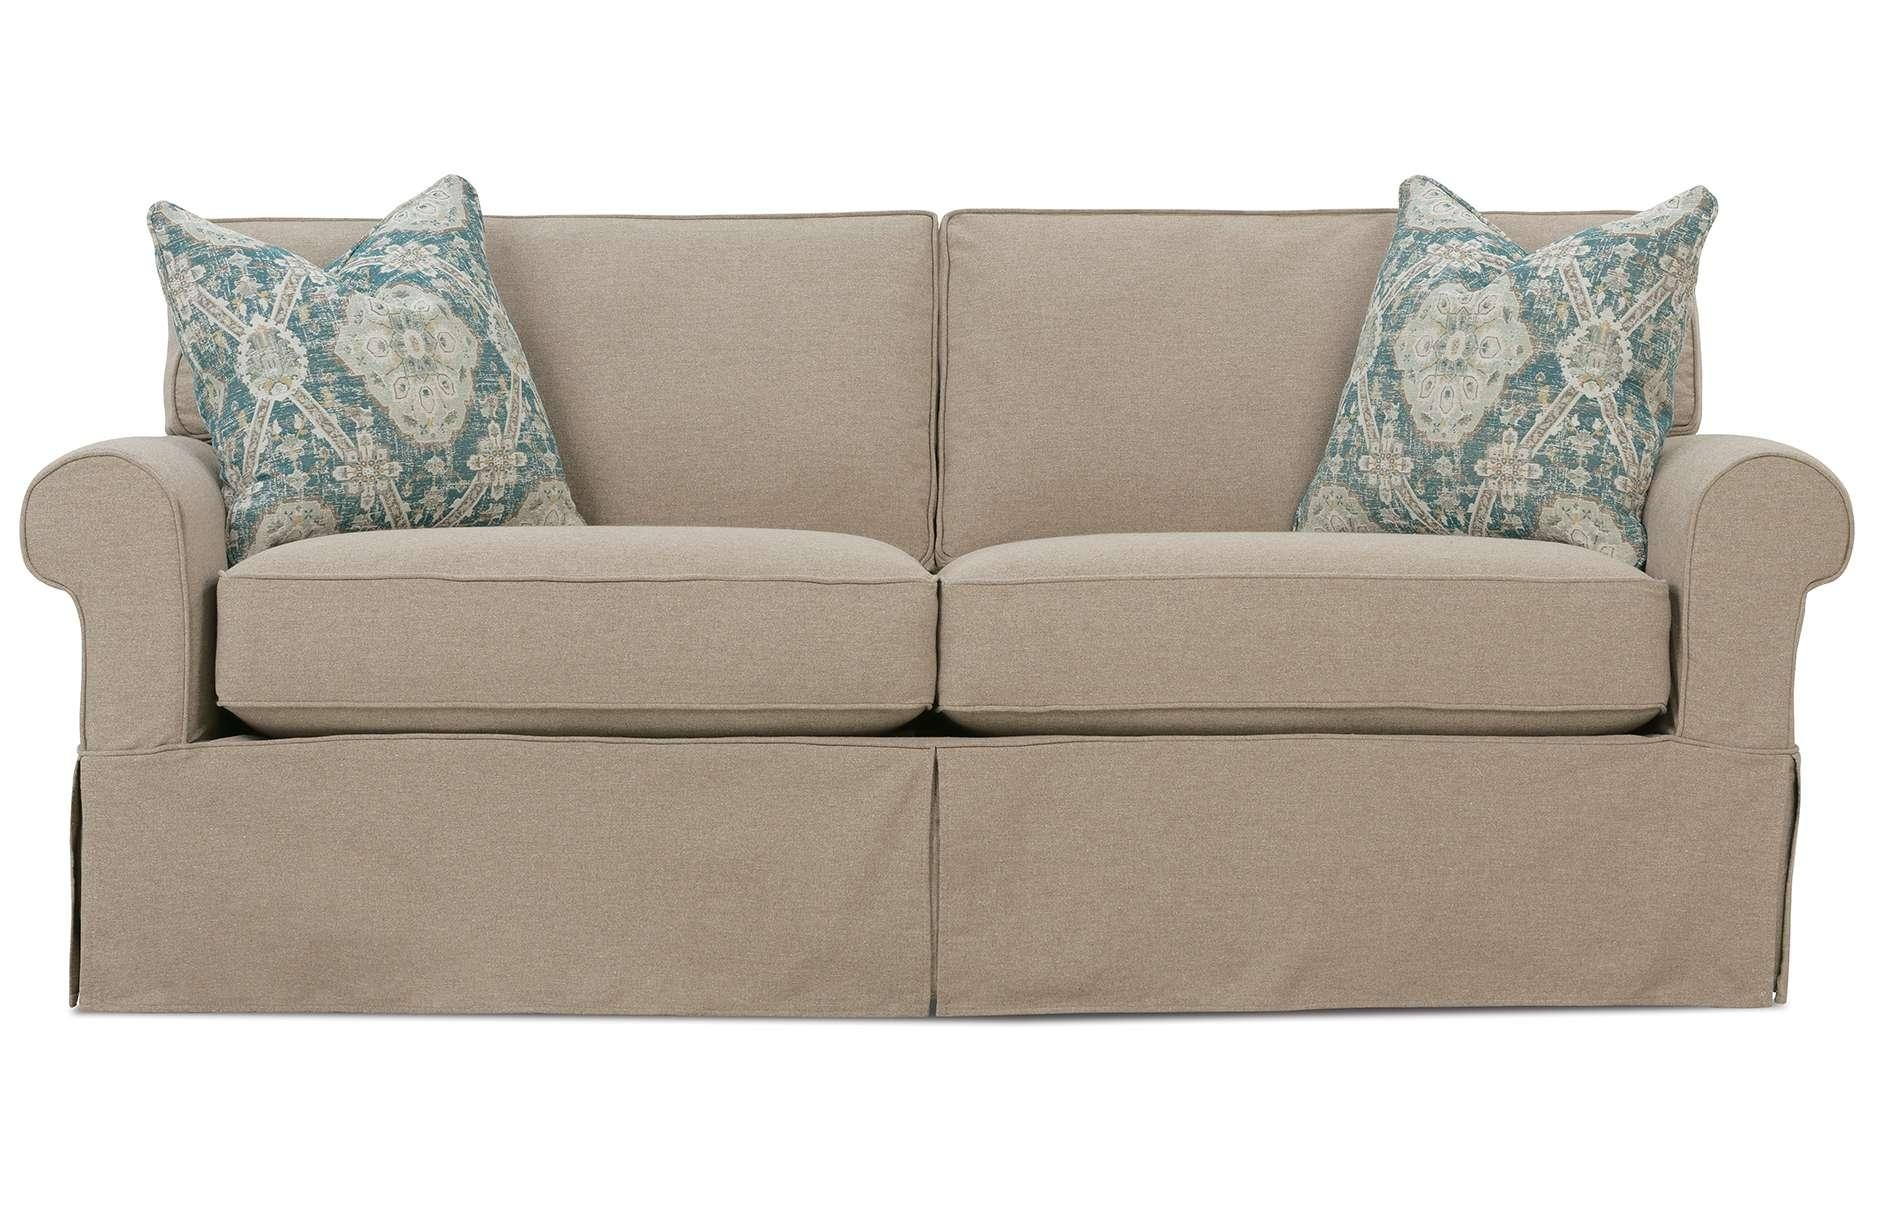 Rowe Furniture Nantucket Sofa | Tehranmix Decoration Within Rowe Slipcovers (Image 12 of 20)